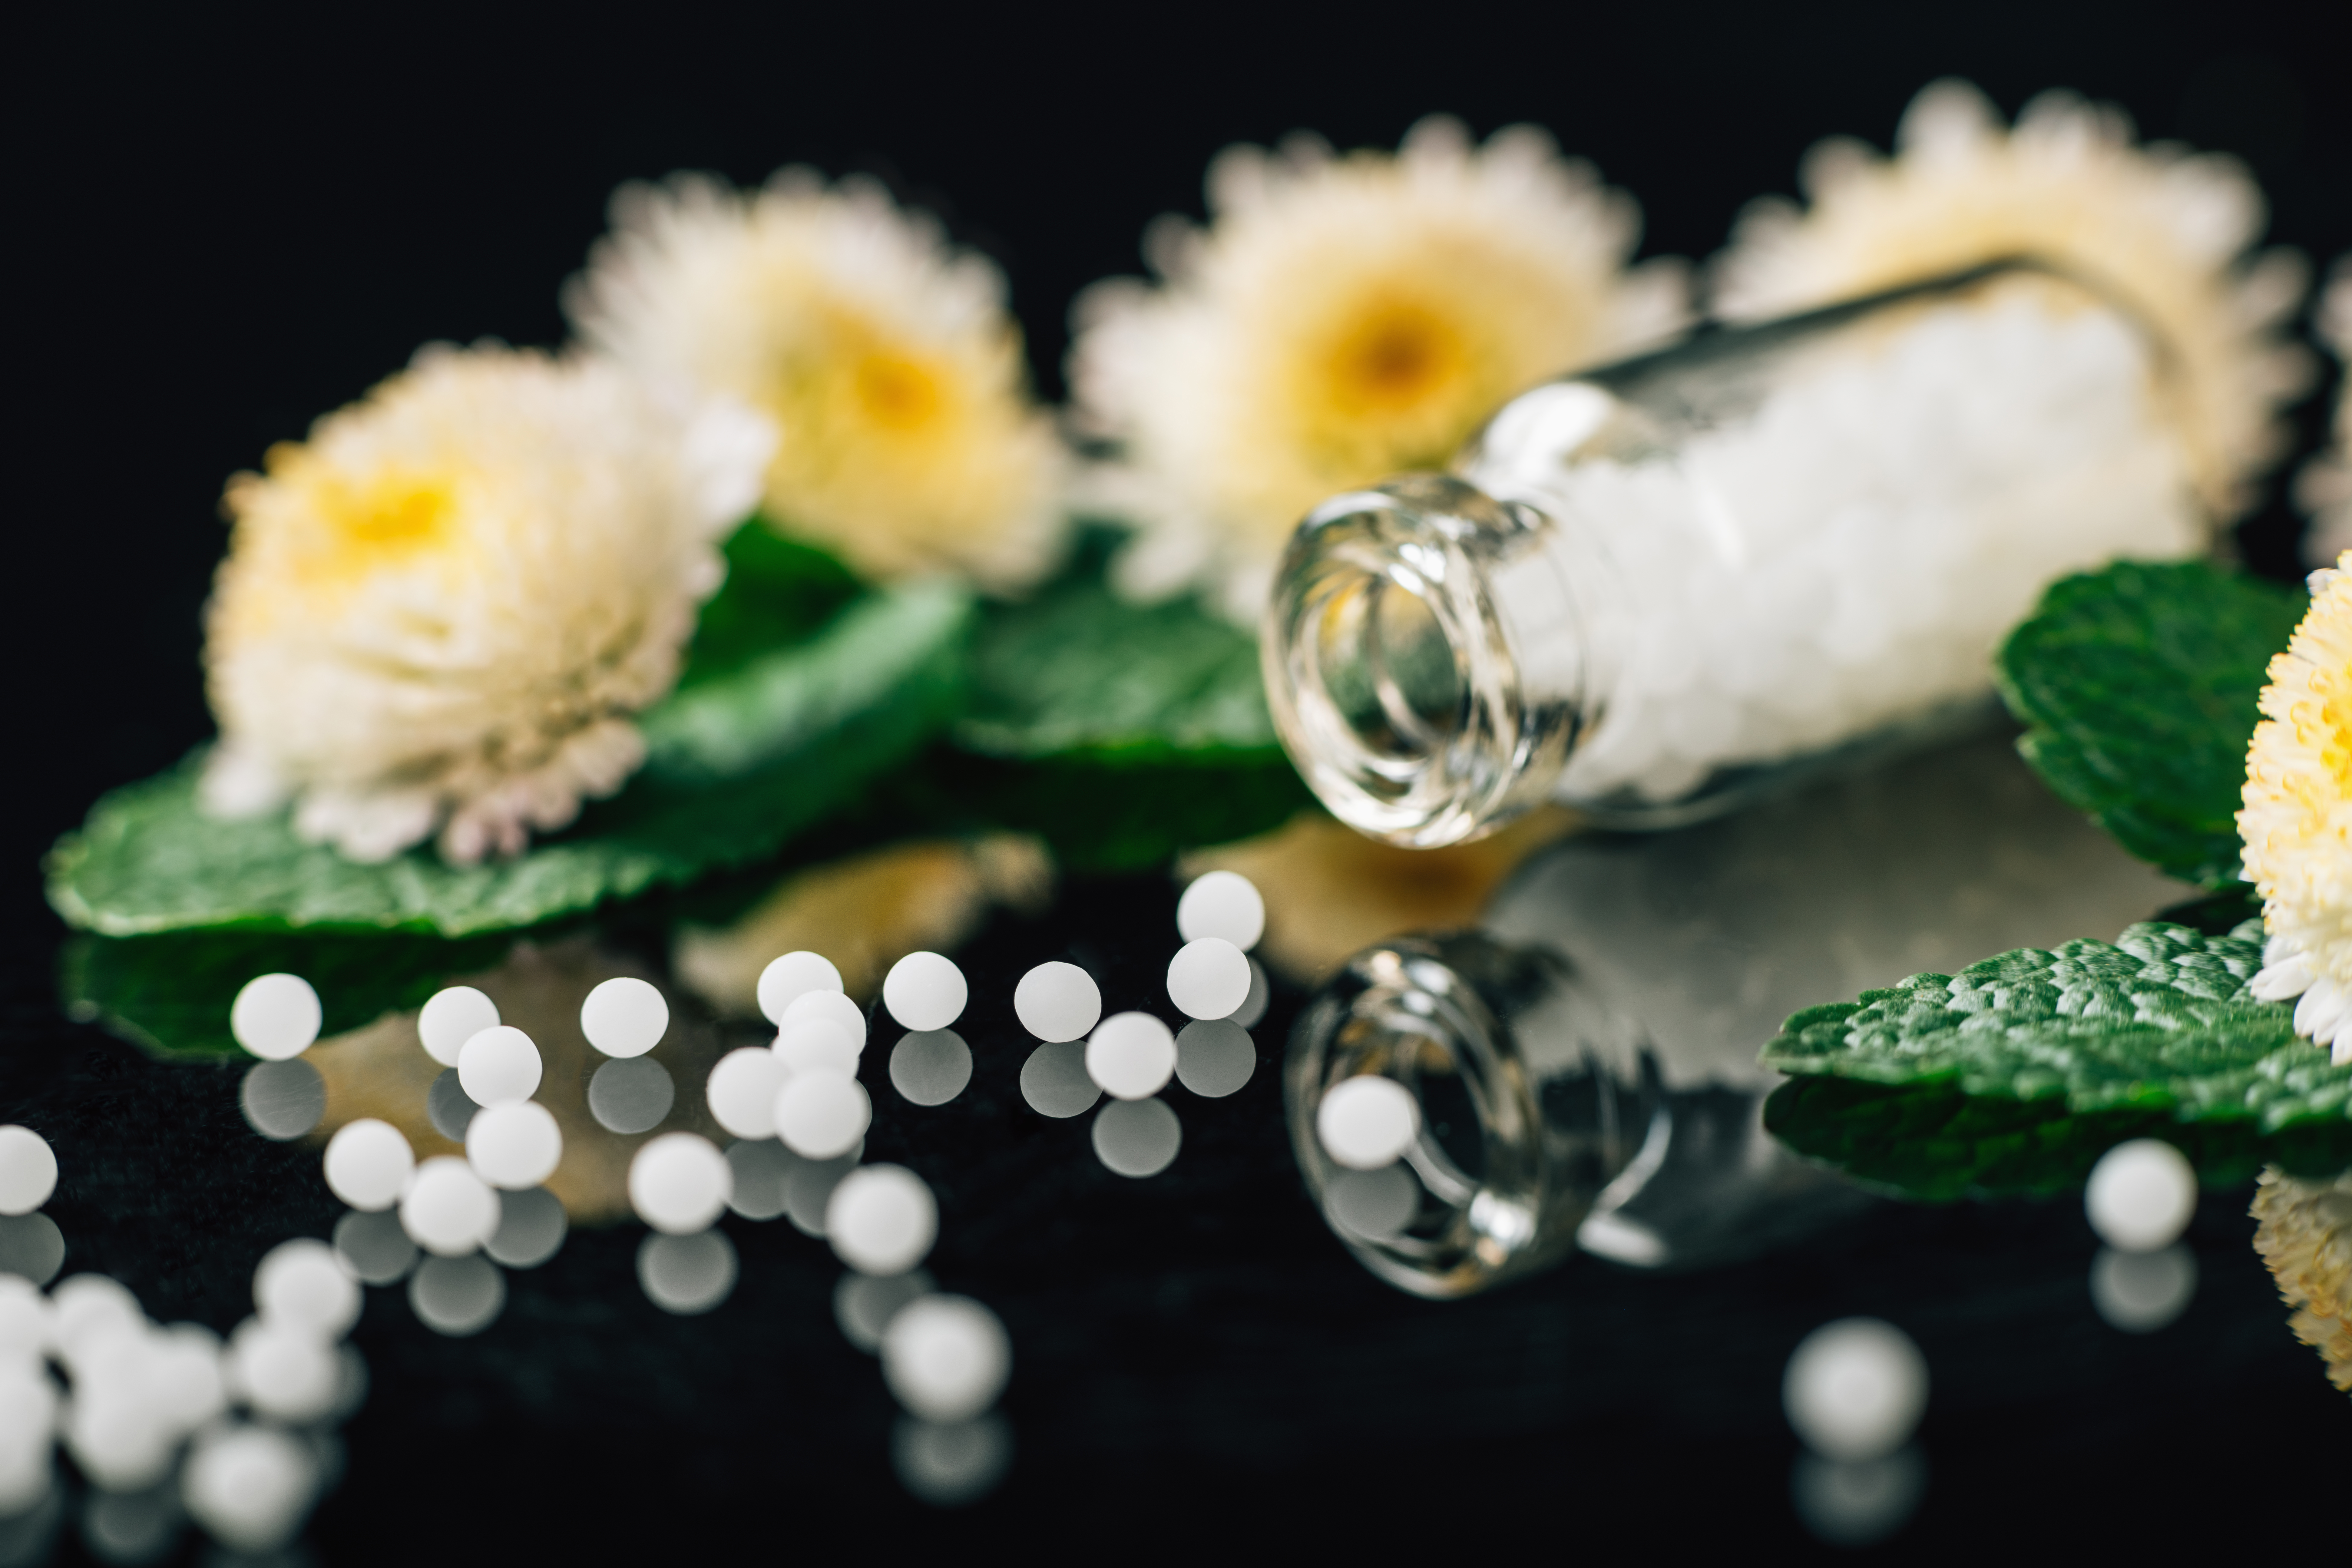 Homeopathy: A Detailed Account Of This Alternative Healing Modality